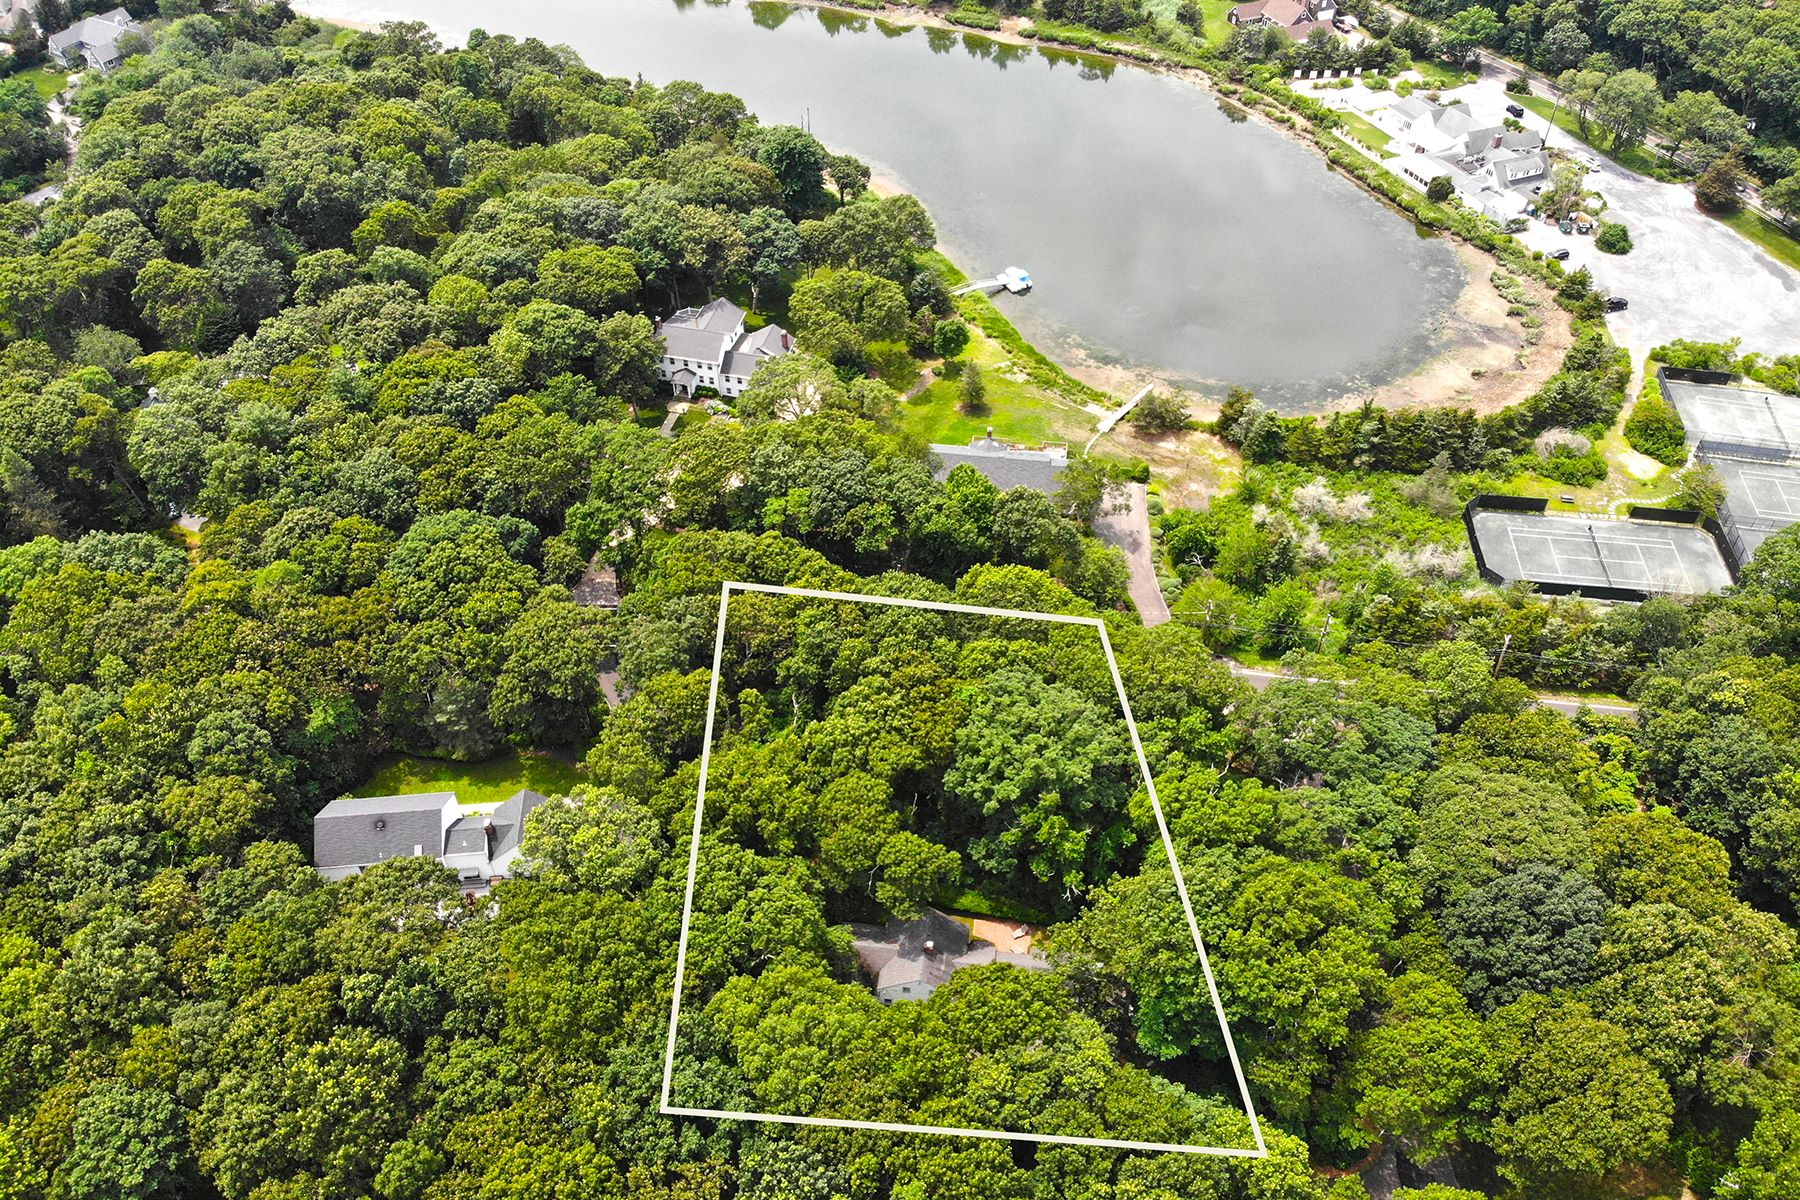 Single Family Homes for Sale at Old Field South 2 Glenwater Lane Setauket, New York 11733 United States